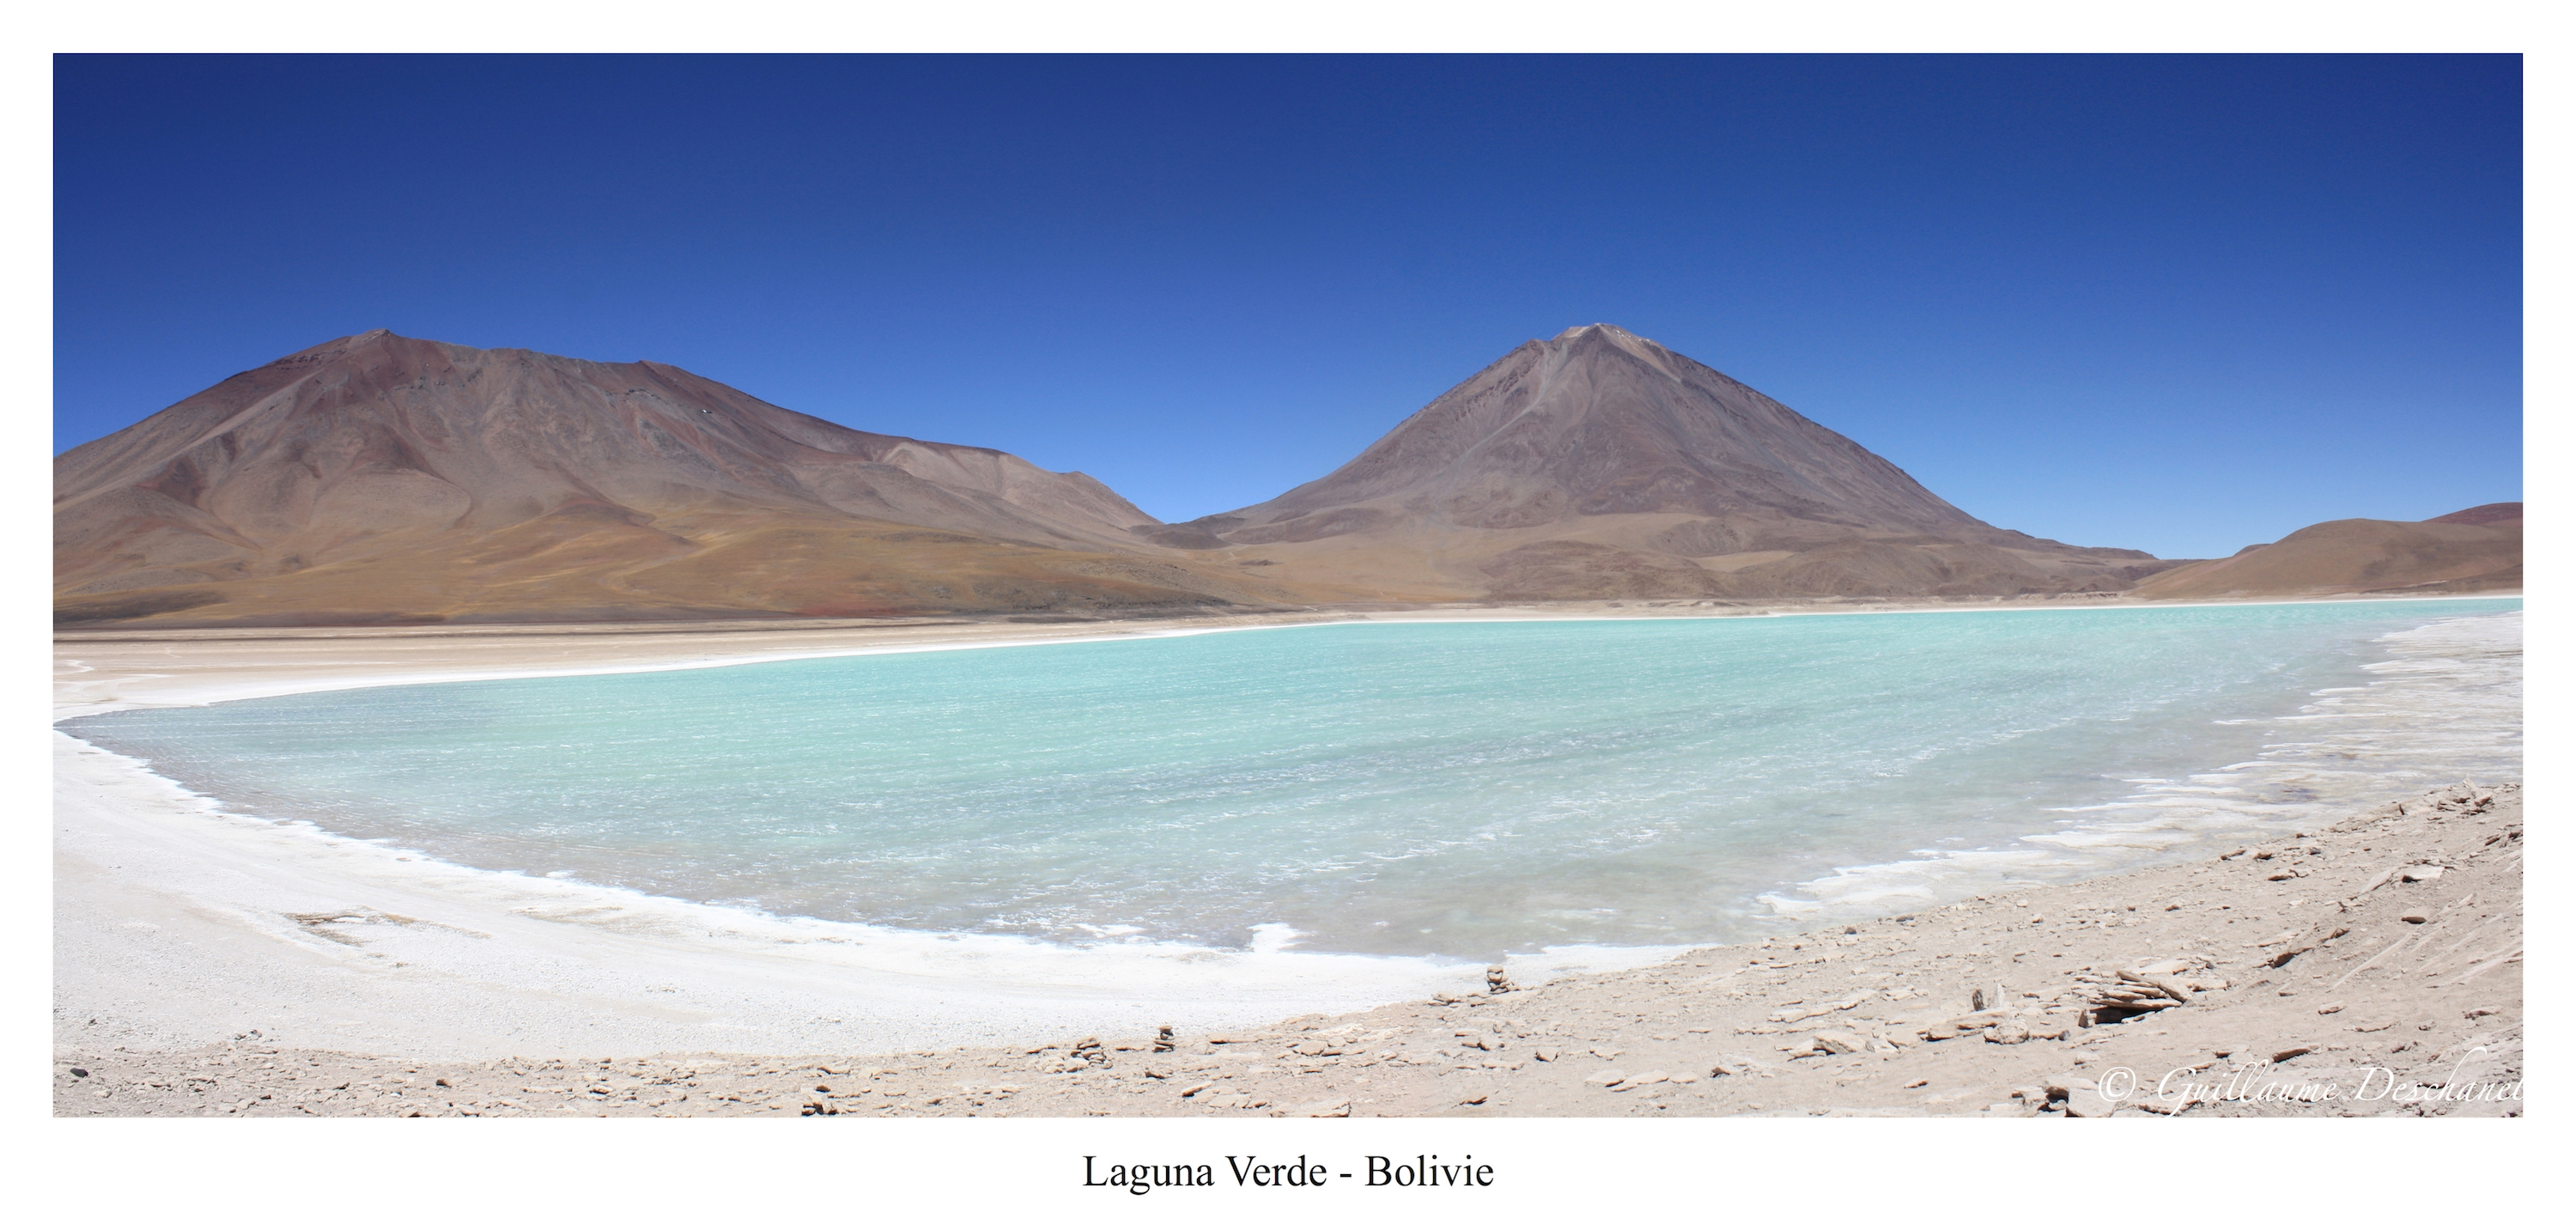 Panoramique 4 - Laguna Verde - Bolivie - copie